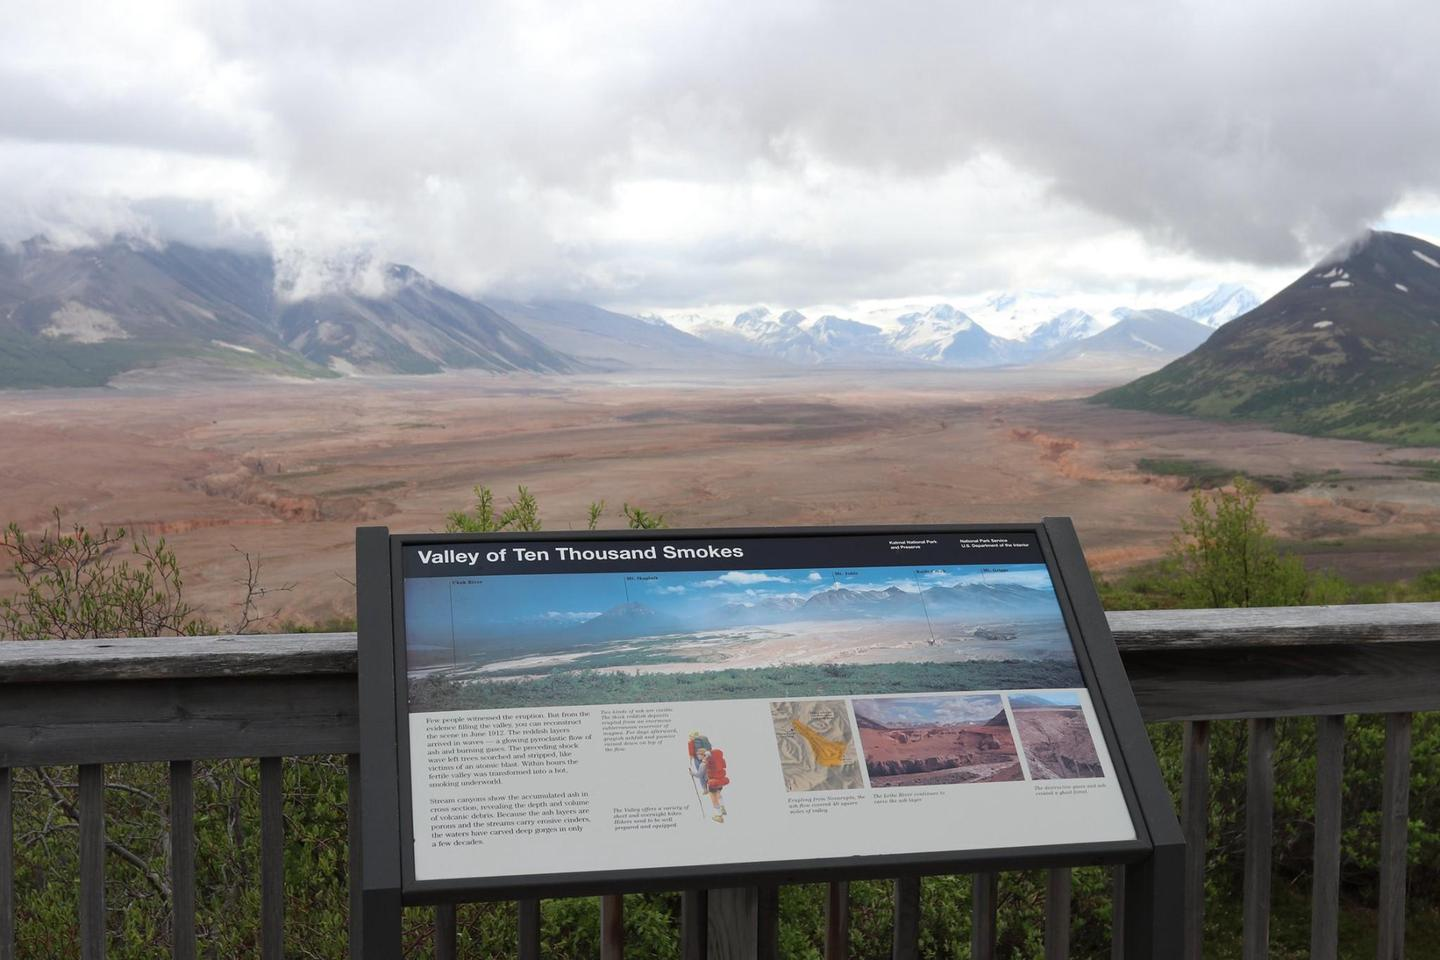 View of Valley of Ten Thousand Smokes from Griggs Visitor CenterVisitors on a Valley of Ten Thousand Smokes tour will stop at the Robert F. Griggs Visitor Center which has magnificent views like this.